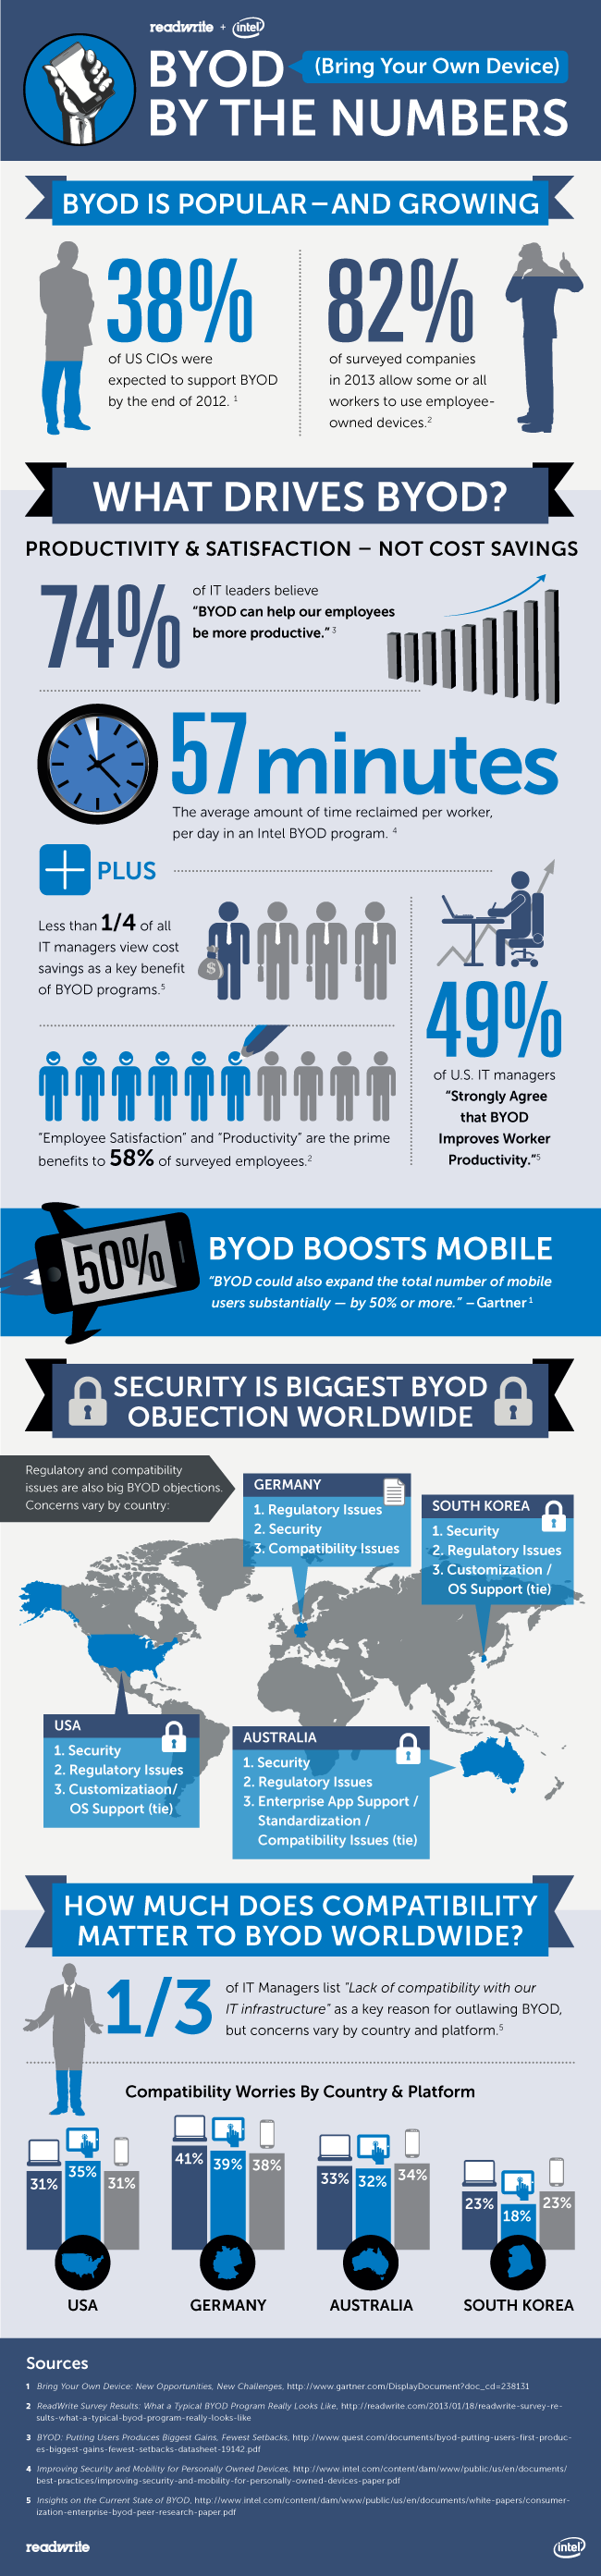 Should Companies Allow BYOD